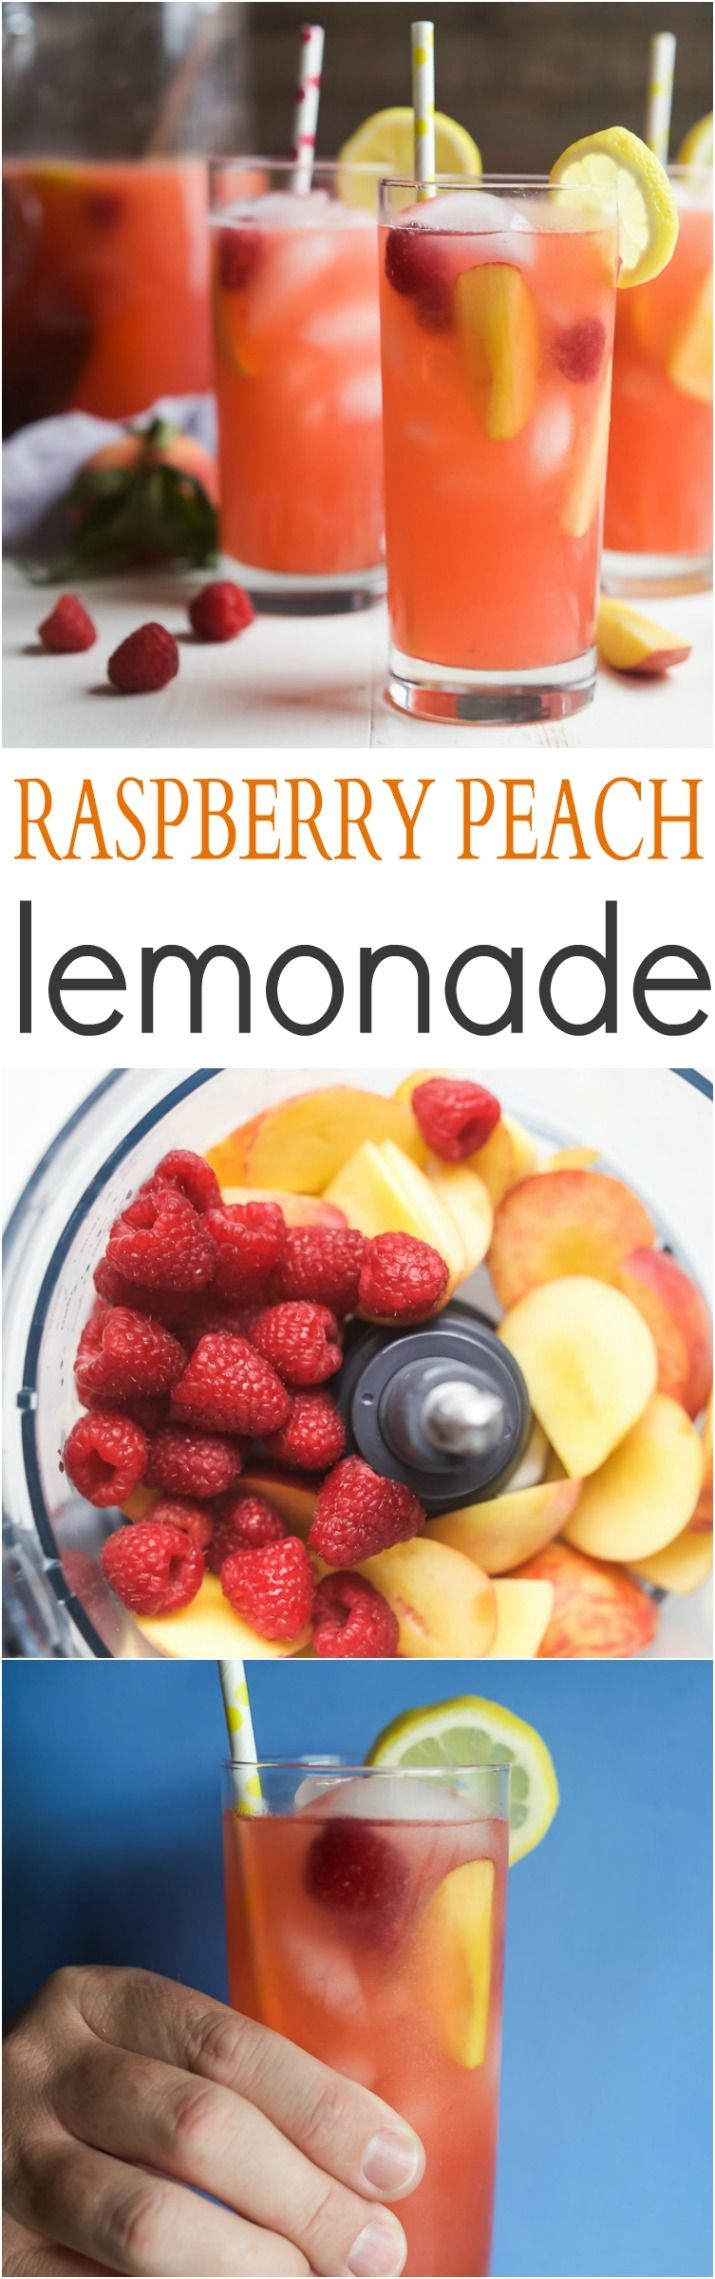 A Homemade Raspberry Peach Lemonade Recipe made with fresh raspberries and peaches for the ultimate refreshing drink to cool you down this summer! | joyfulhealthyeats.com #weightlosstips